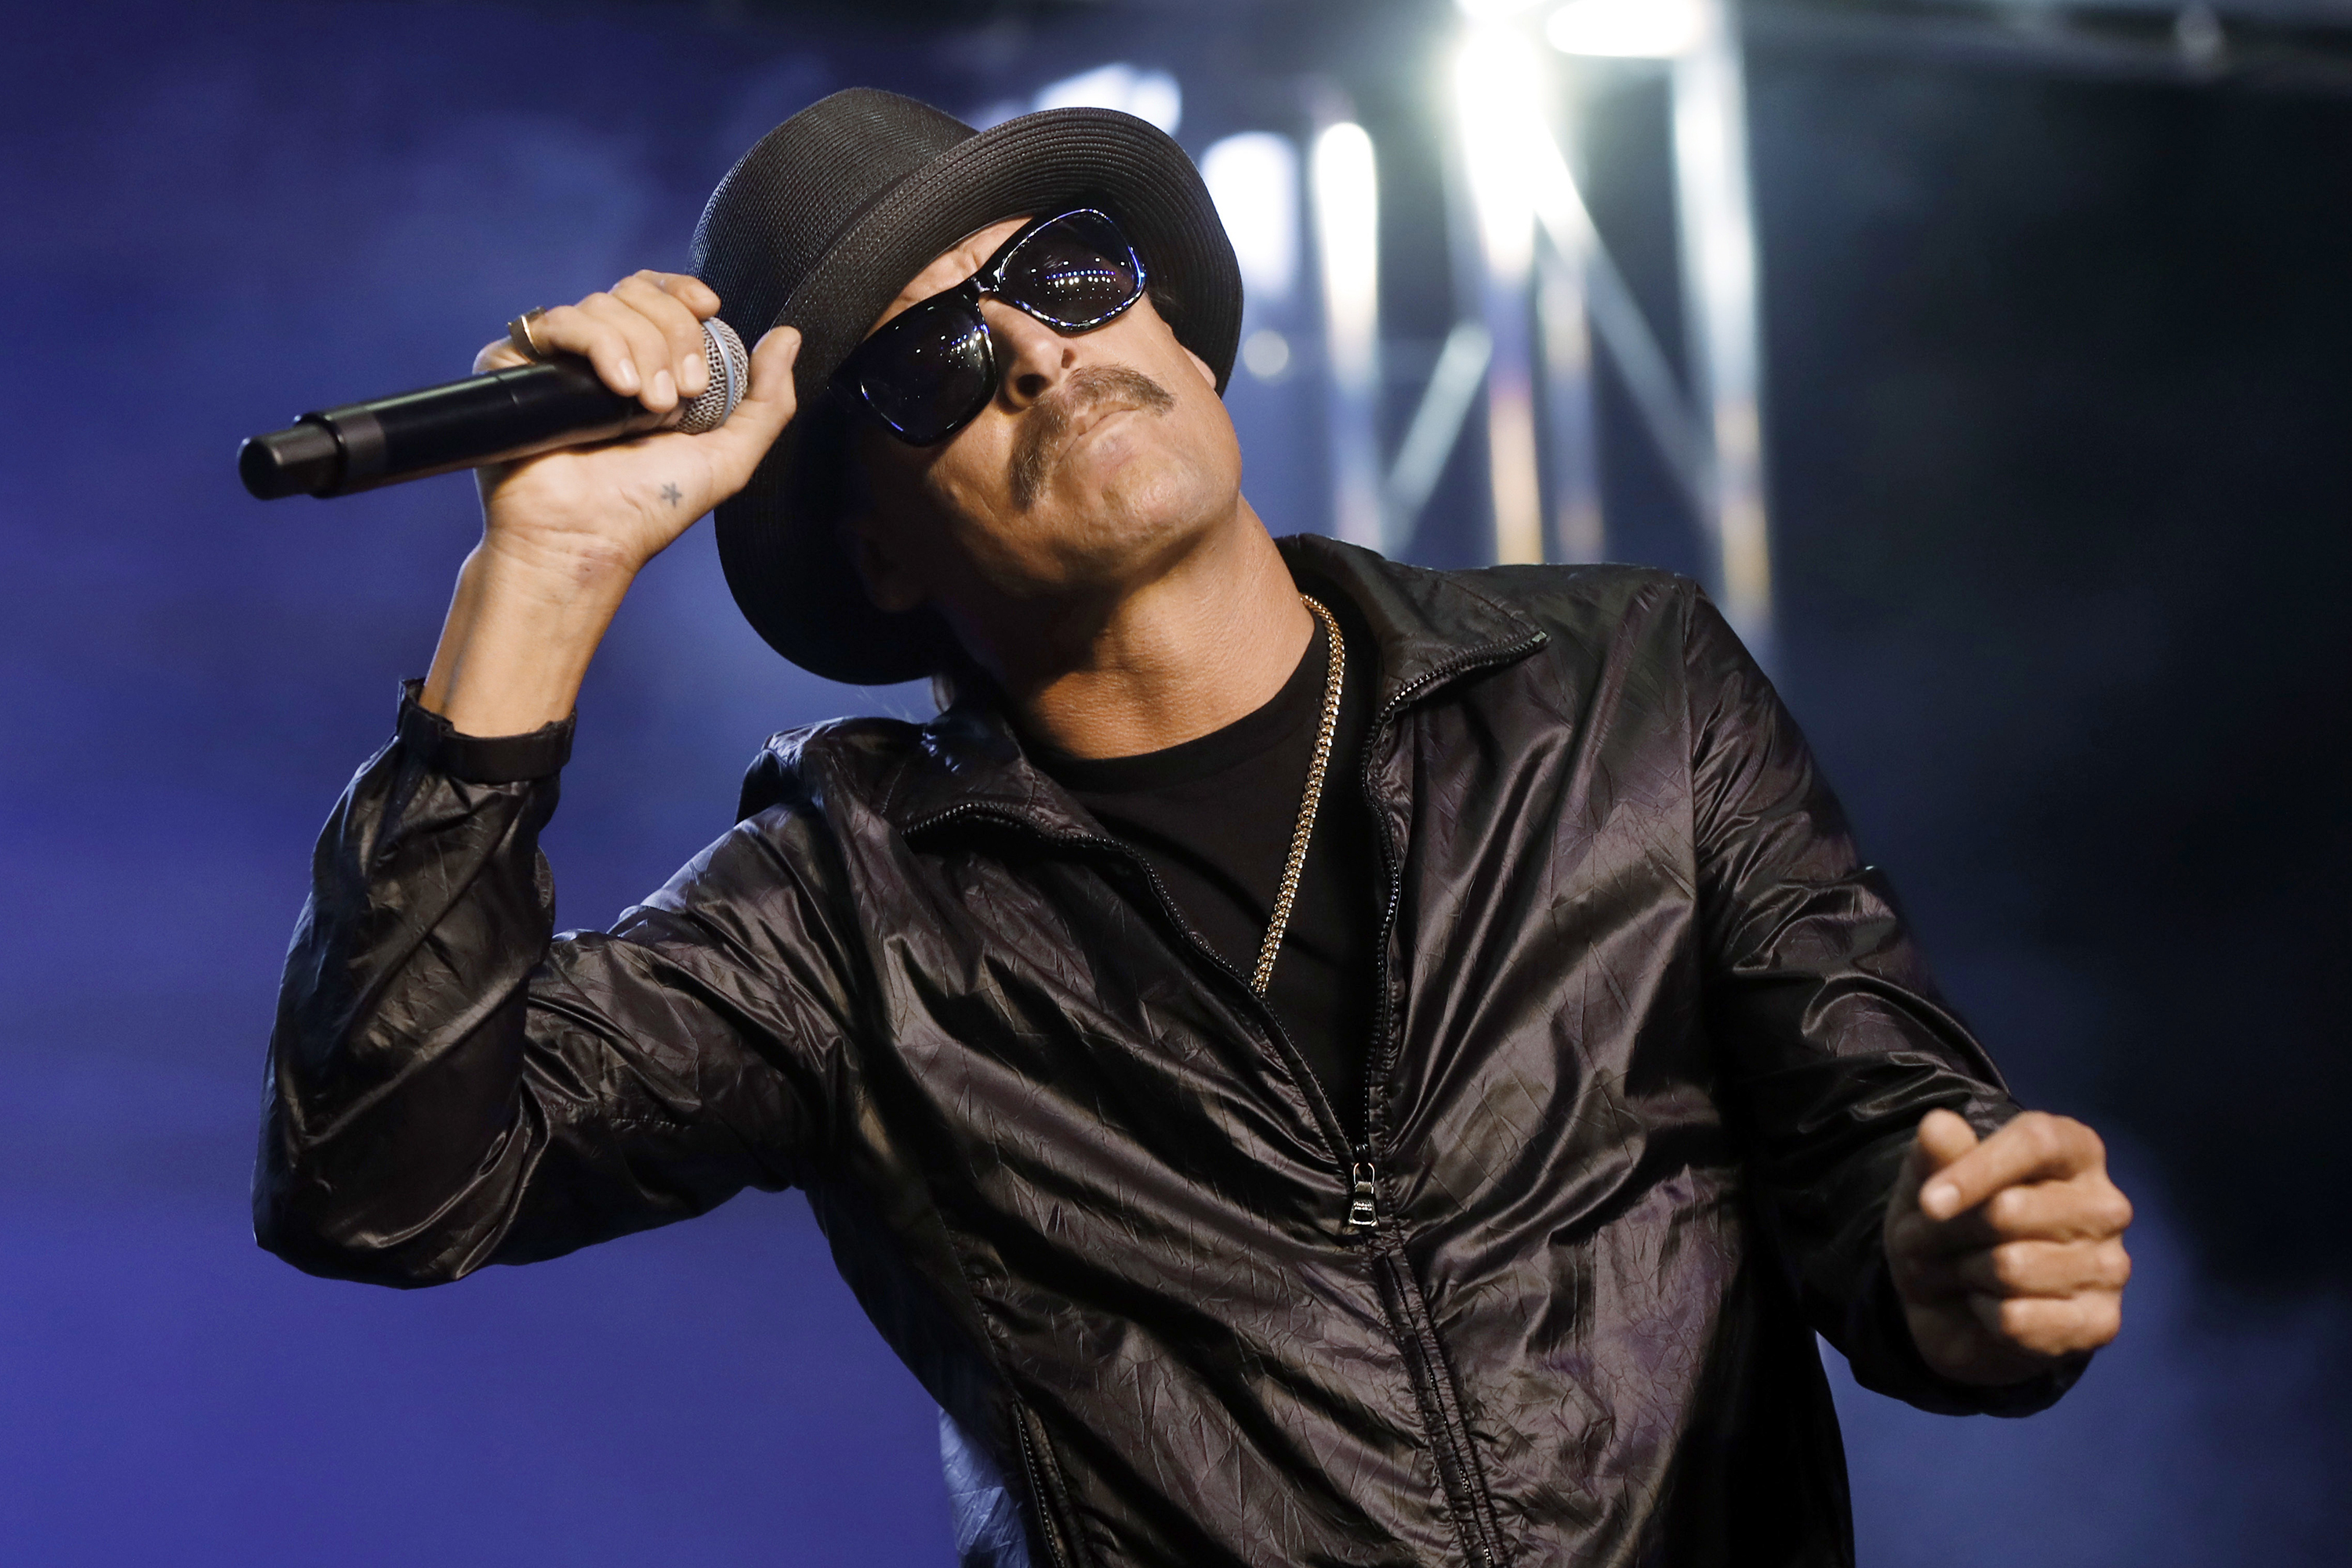 The owners of the Detroit sports arena housing Kid Rock's restaurant say the musician won't renew his licensing agreement for the eatery.